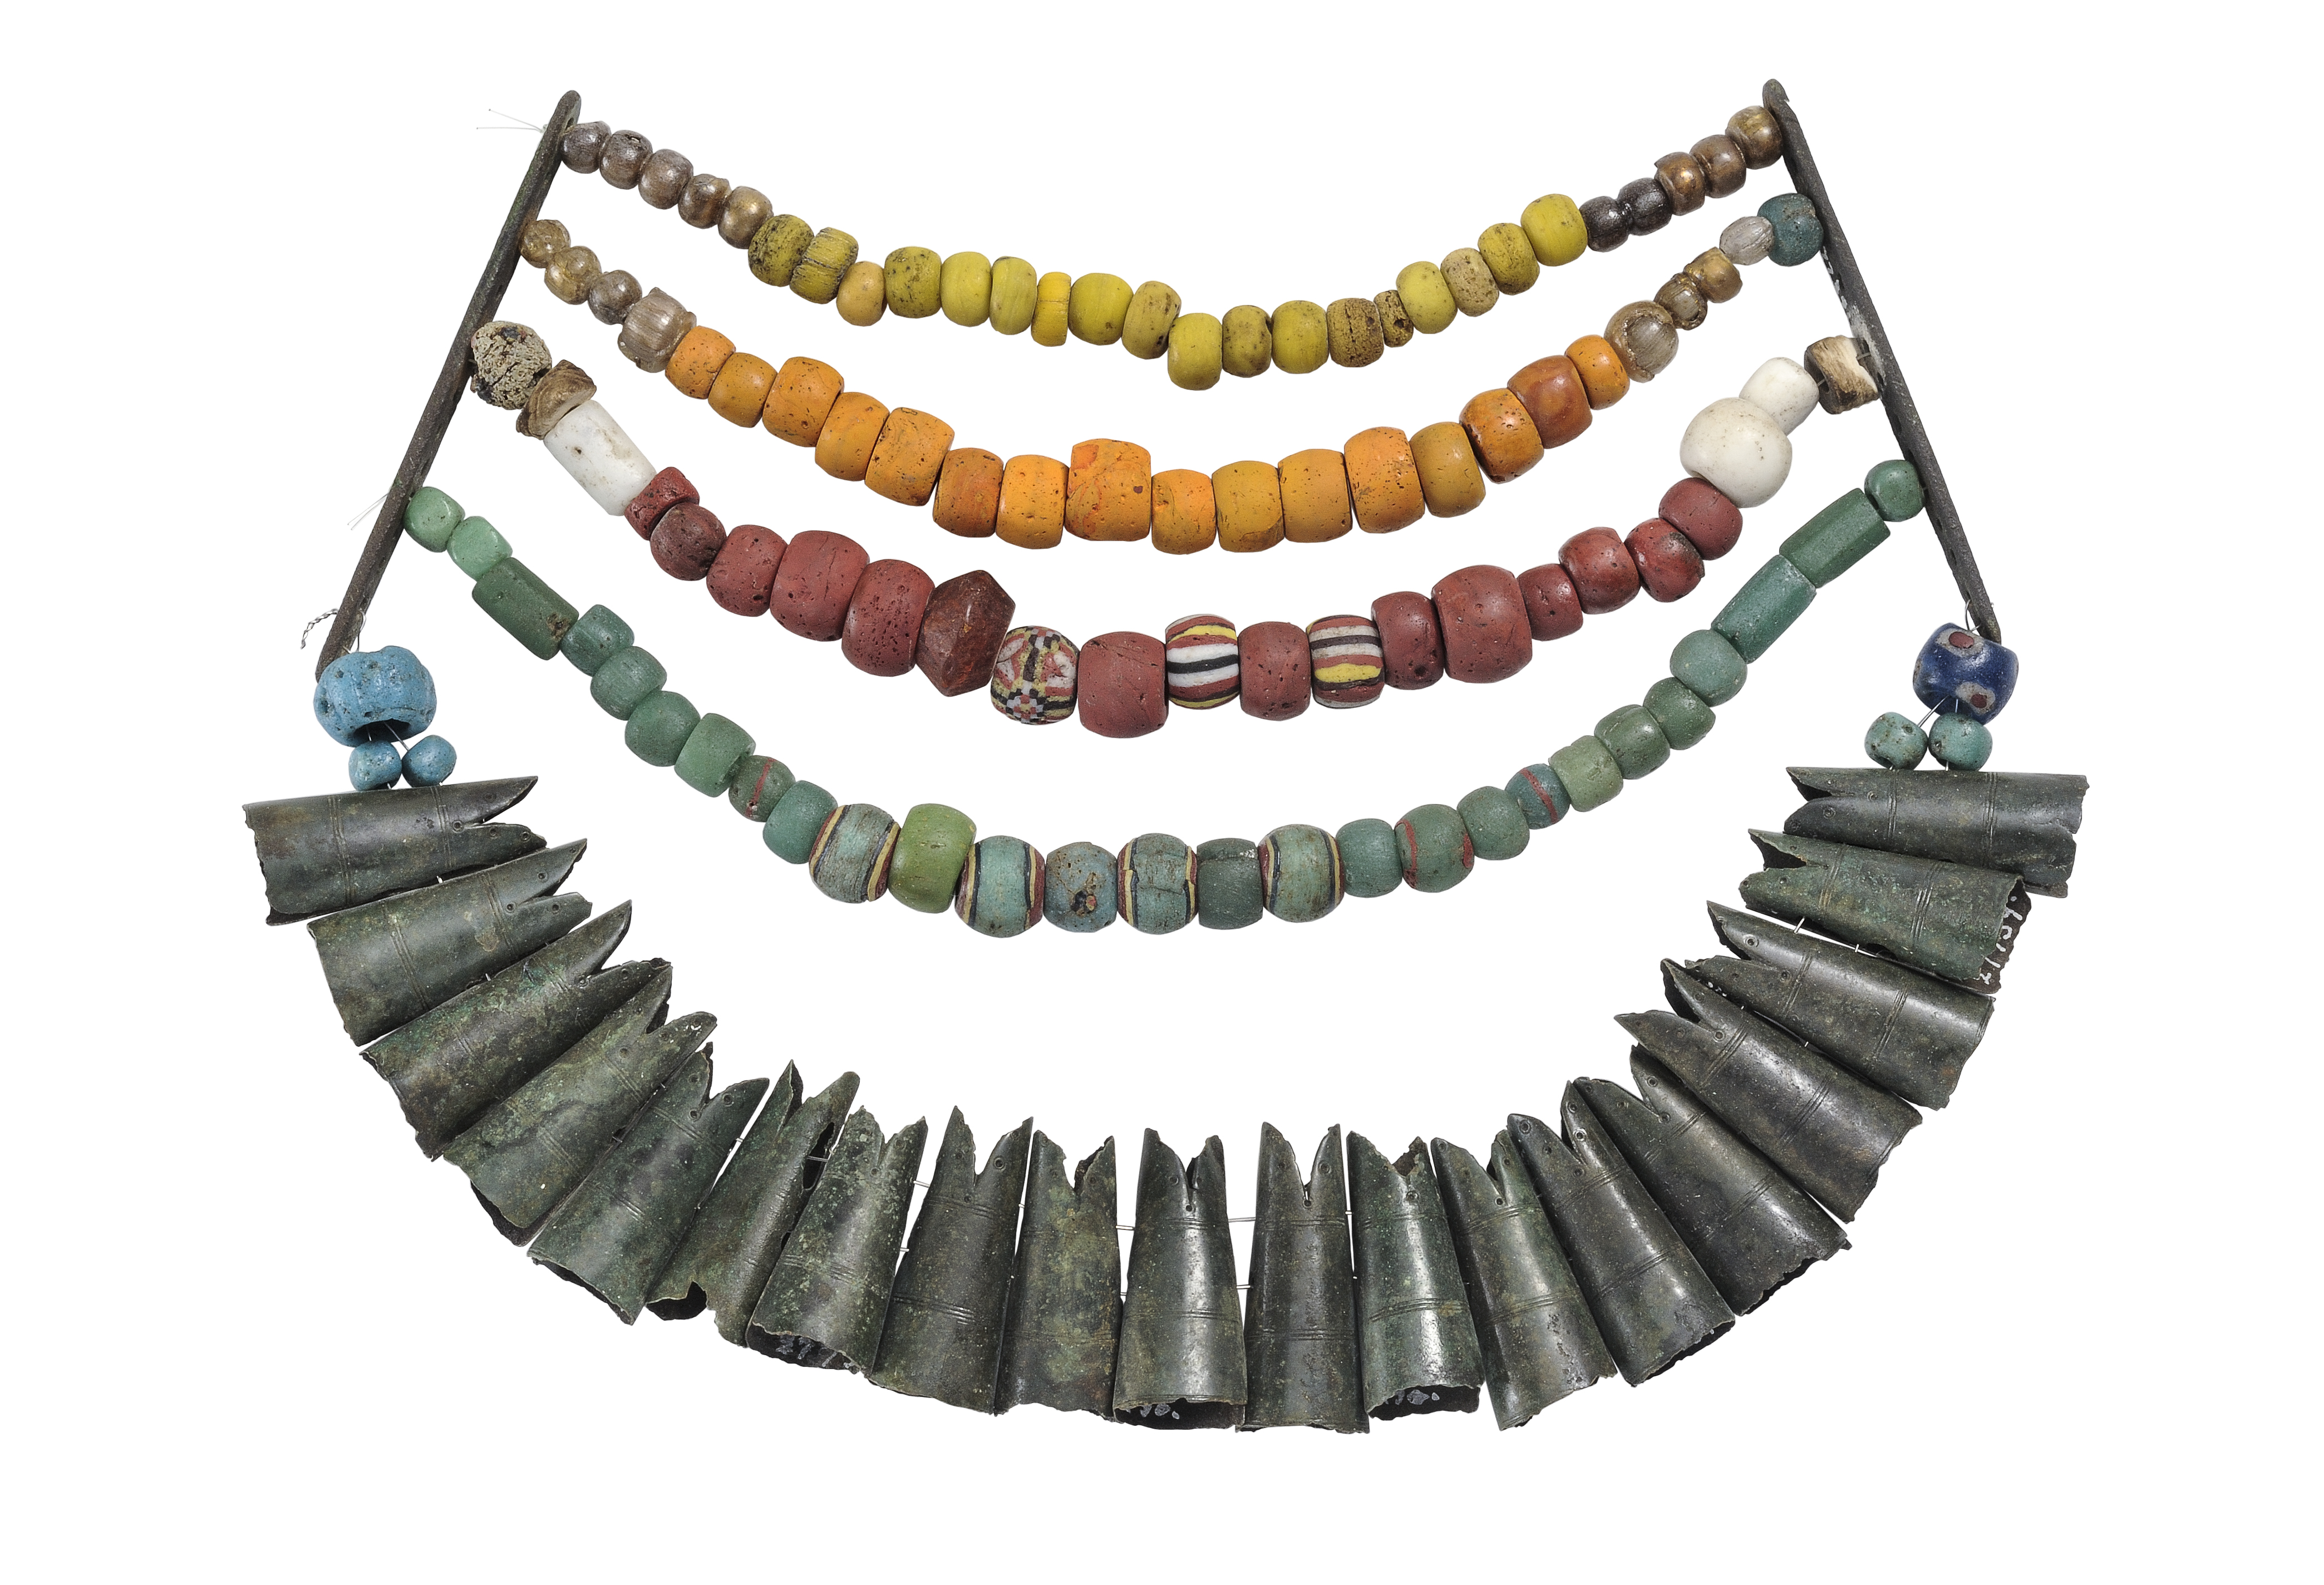 101 beads of varying colors and sizes distributed over four strings in a set with 19 fishtail shaped pendants.